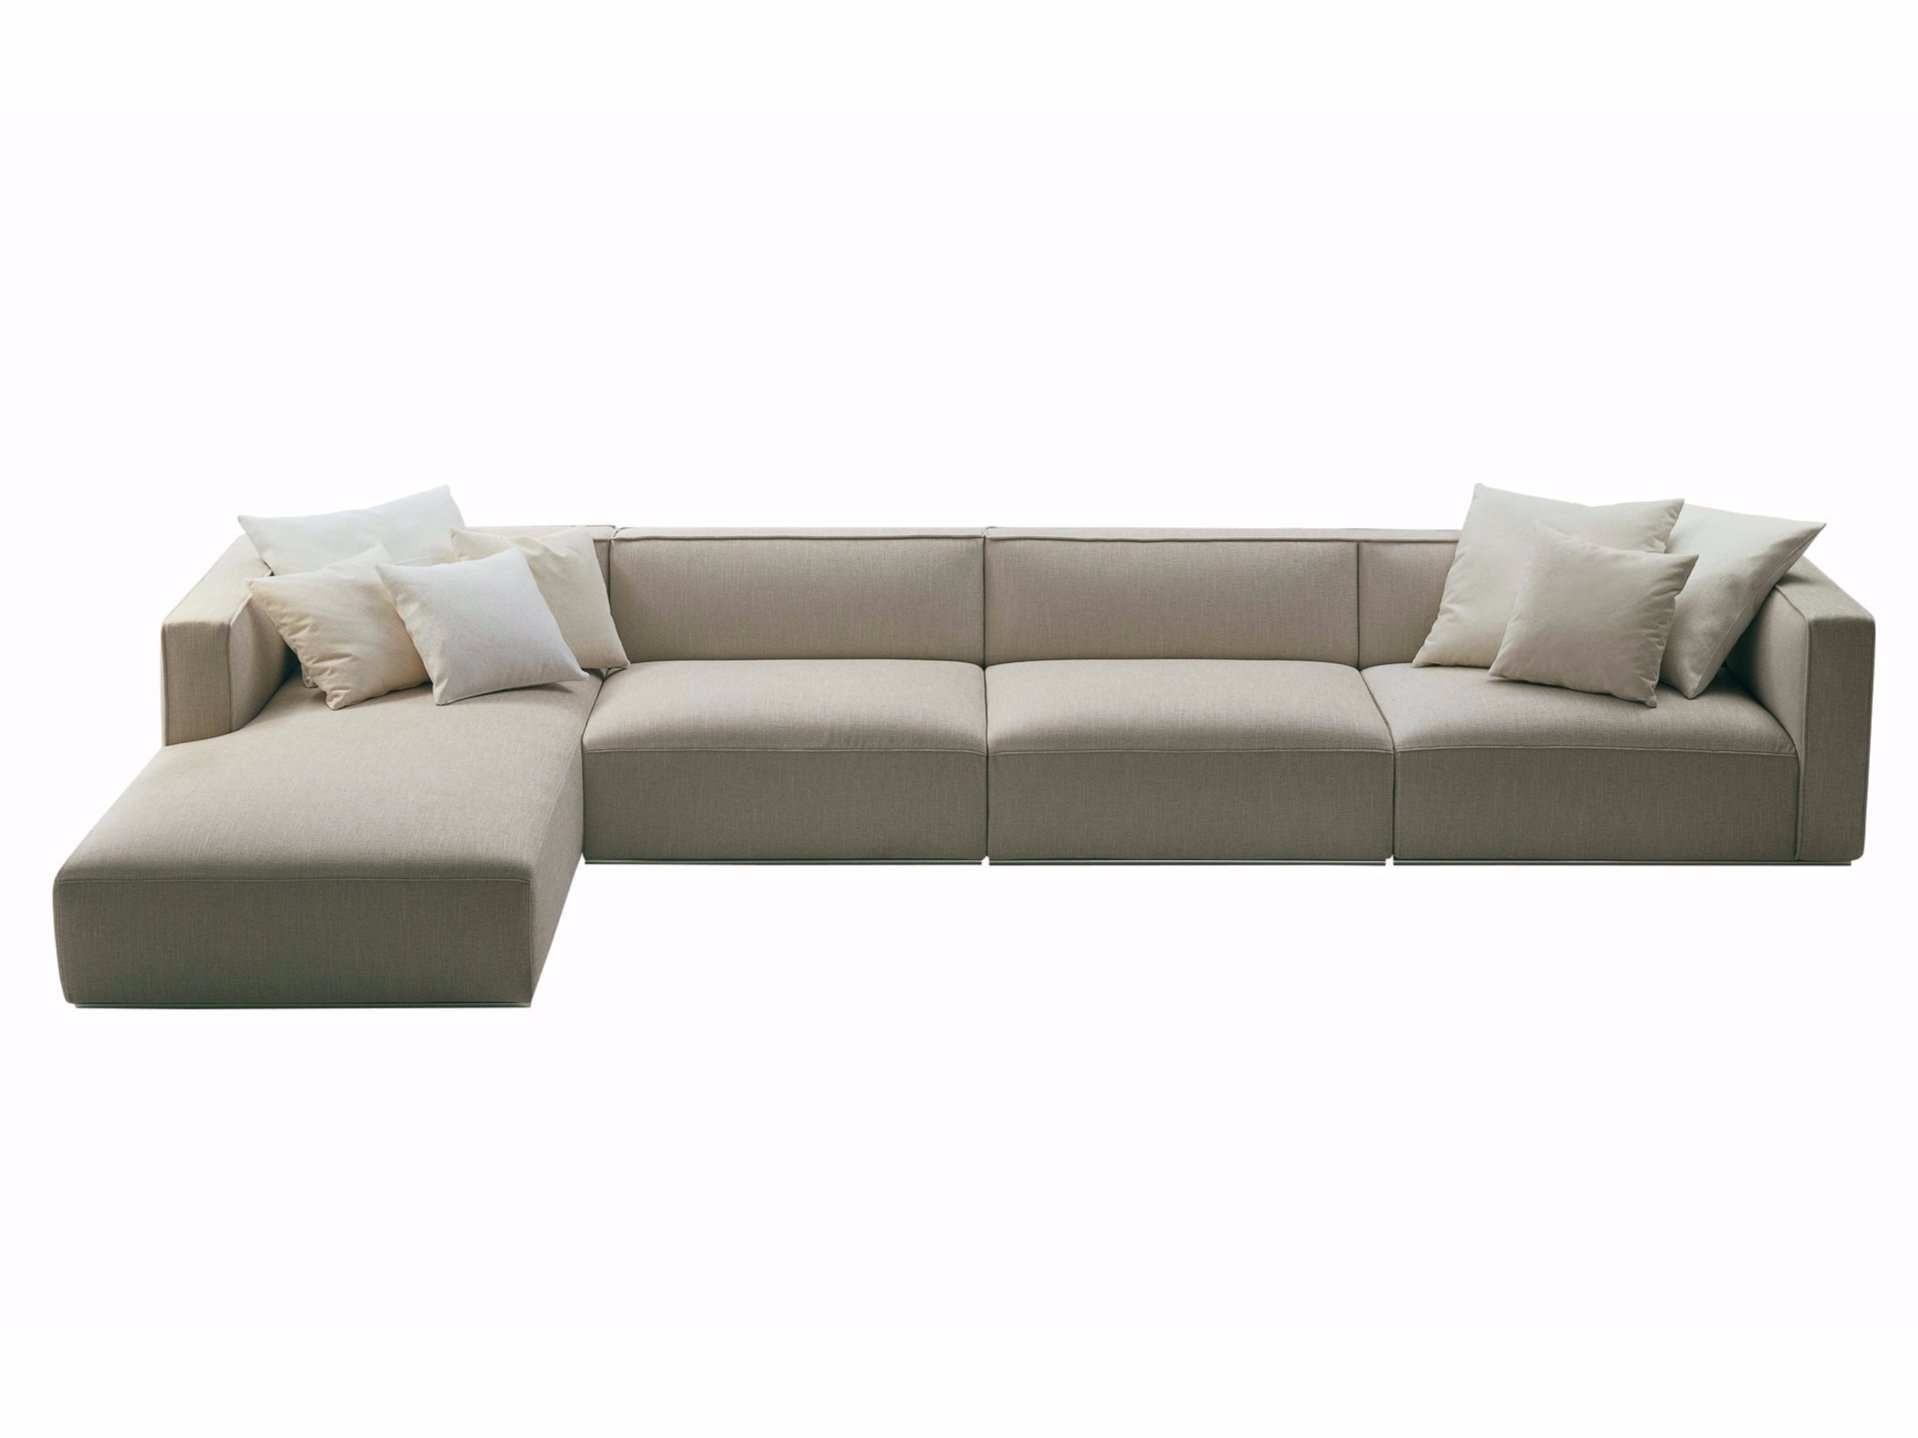 Shangai sofa with chaise longue shangai collection by for Chaise longue furniture